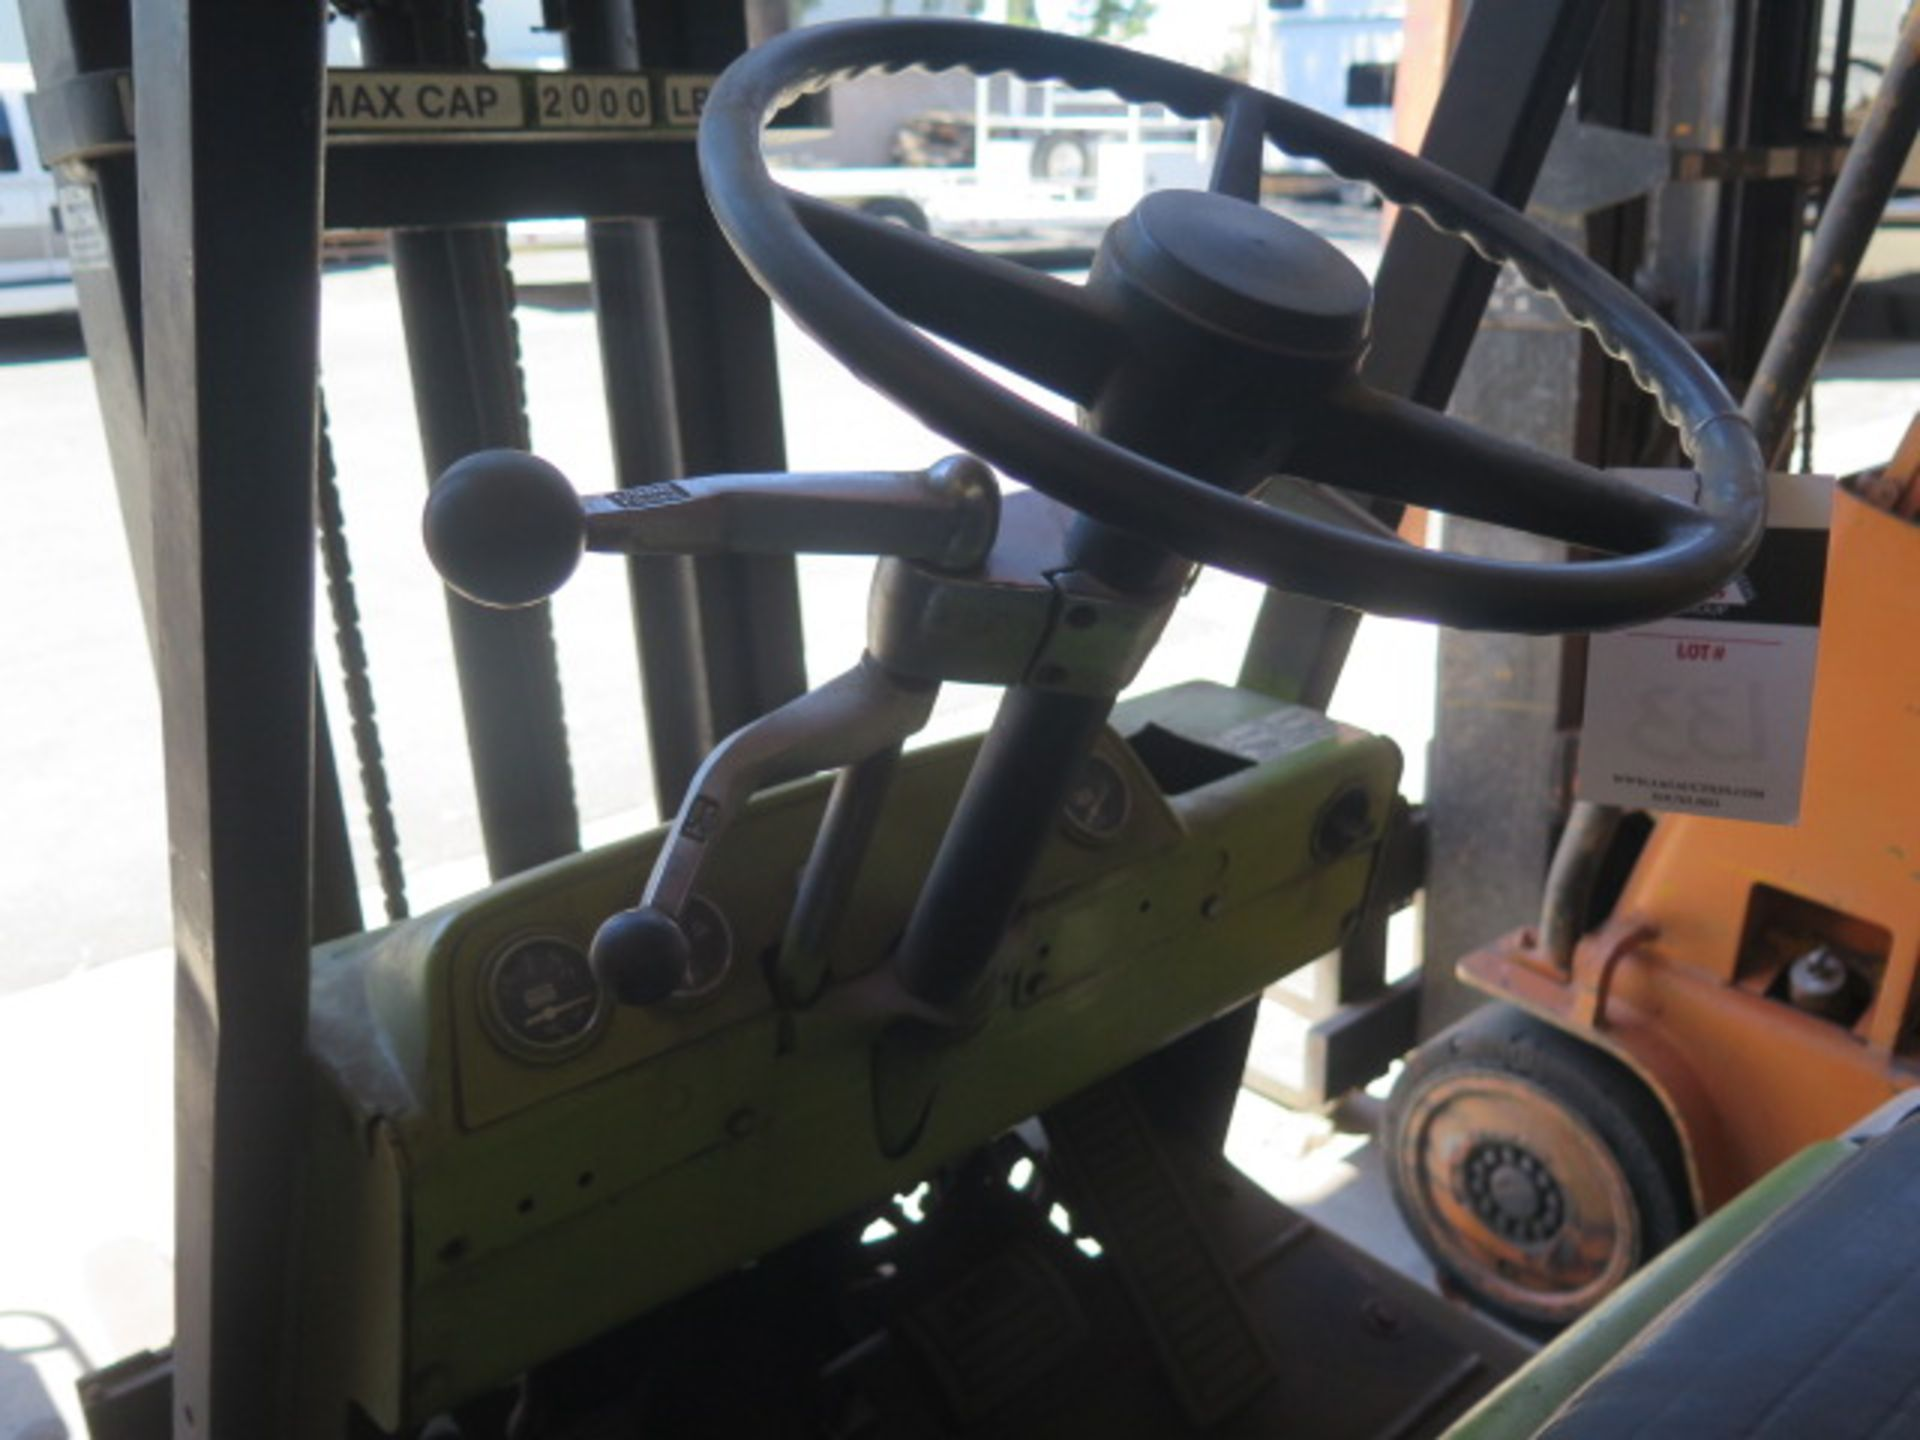 """Clark 2000 Lb Cap LPG Forklift w/ 2-Stage 130"""" Lift Height, (Condition Unknown), SOLD AS IS - Image 10 of 12"""